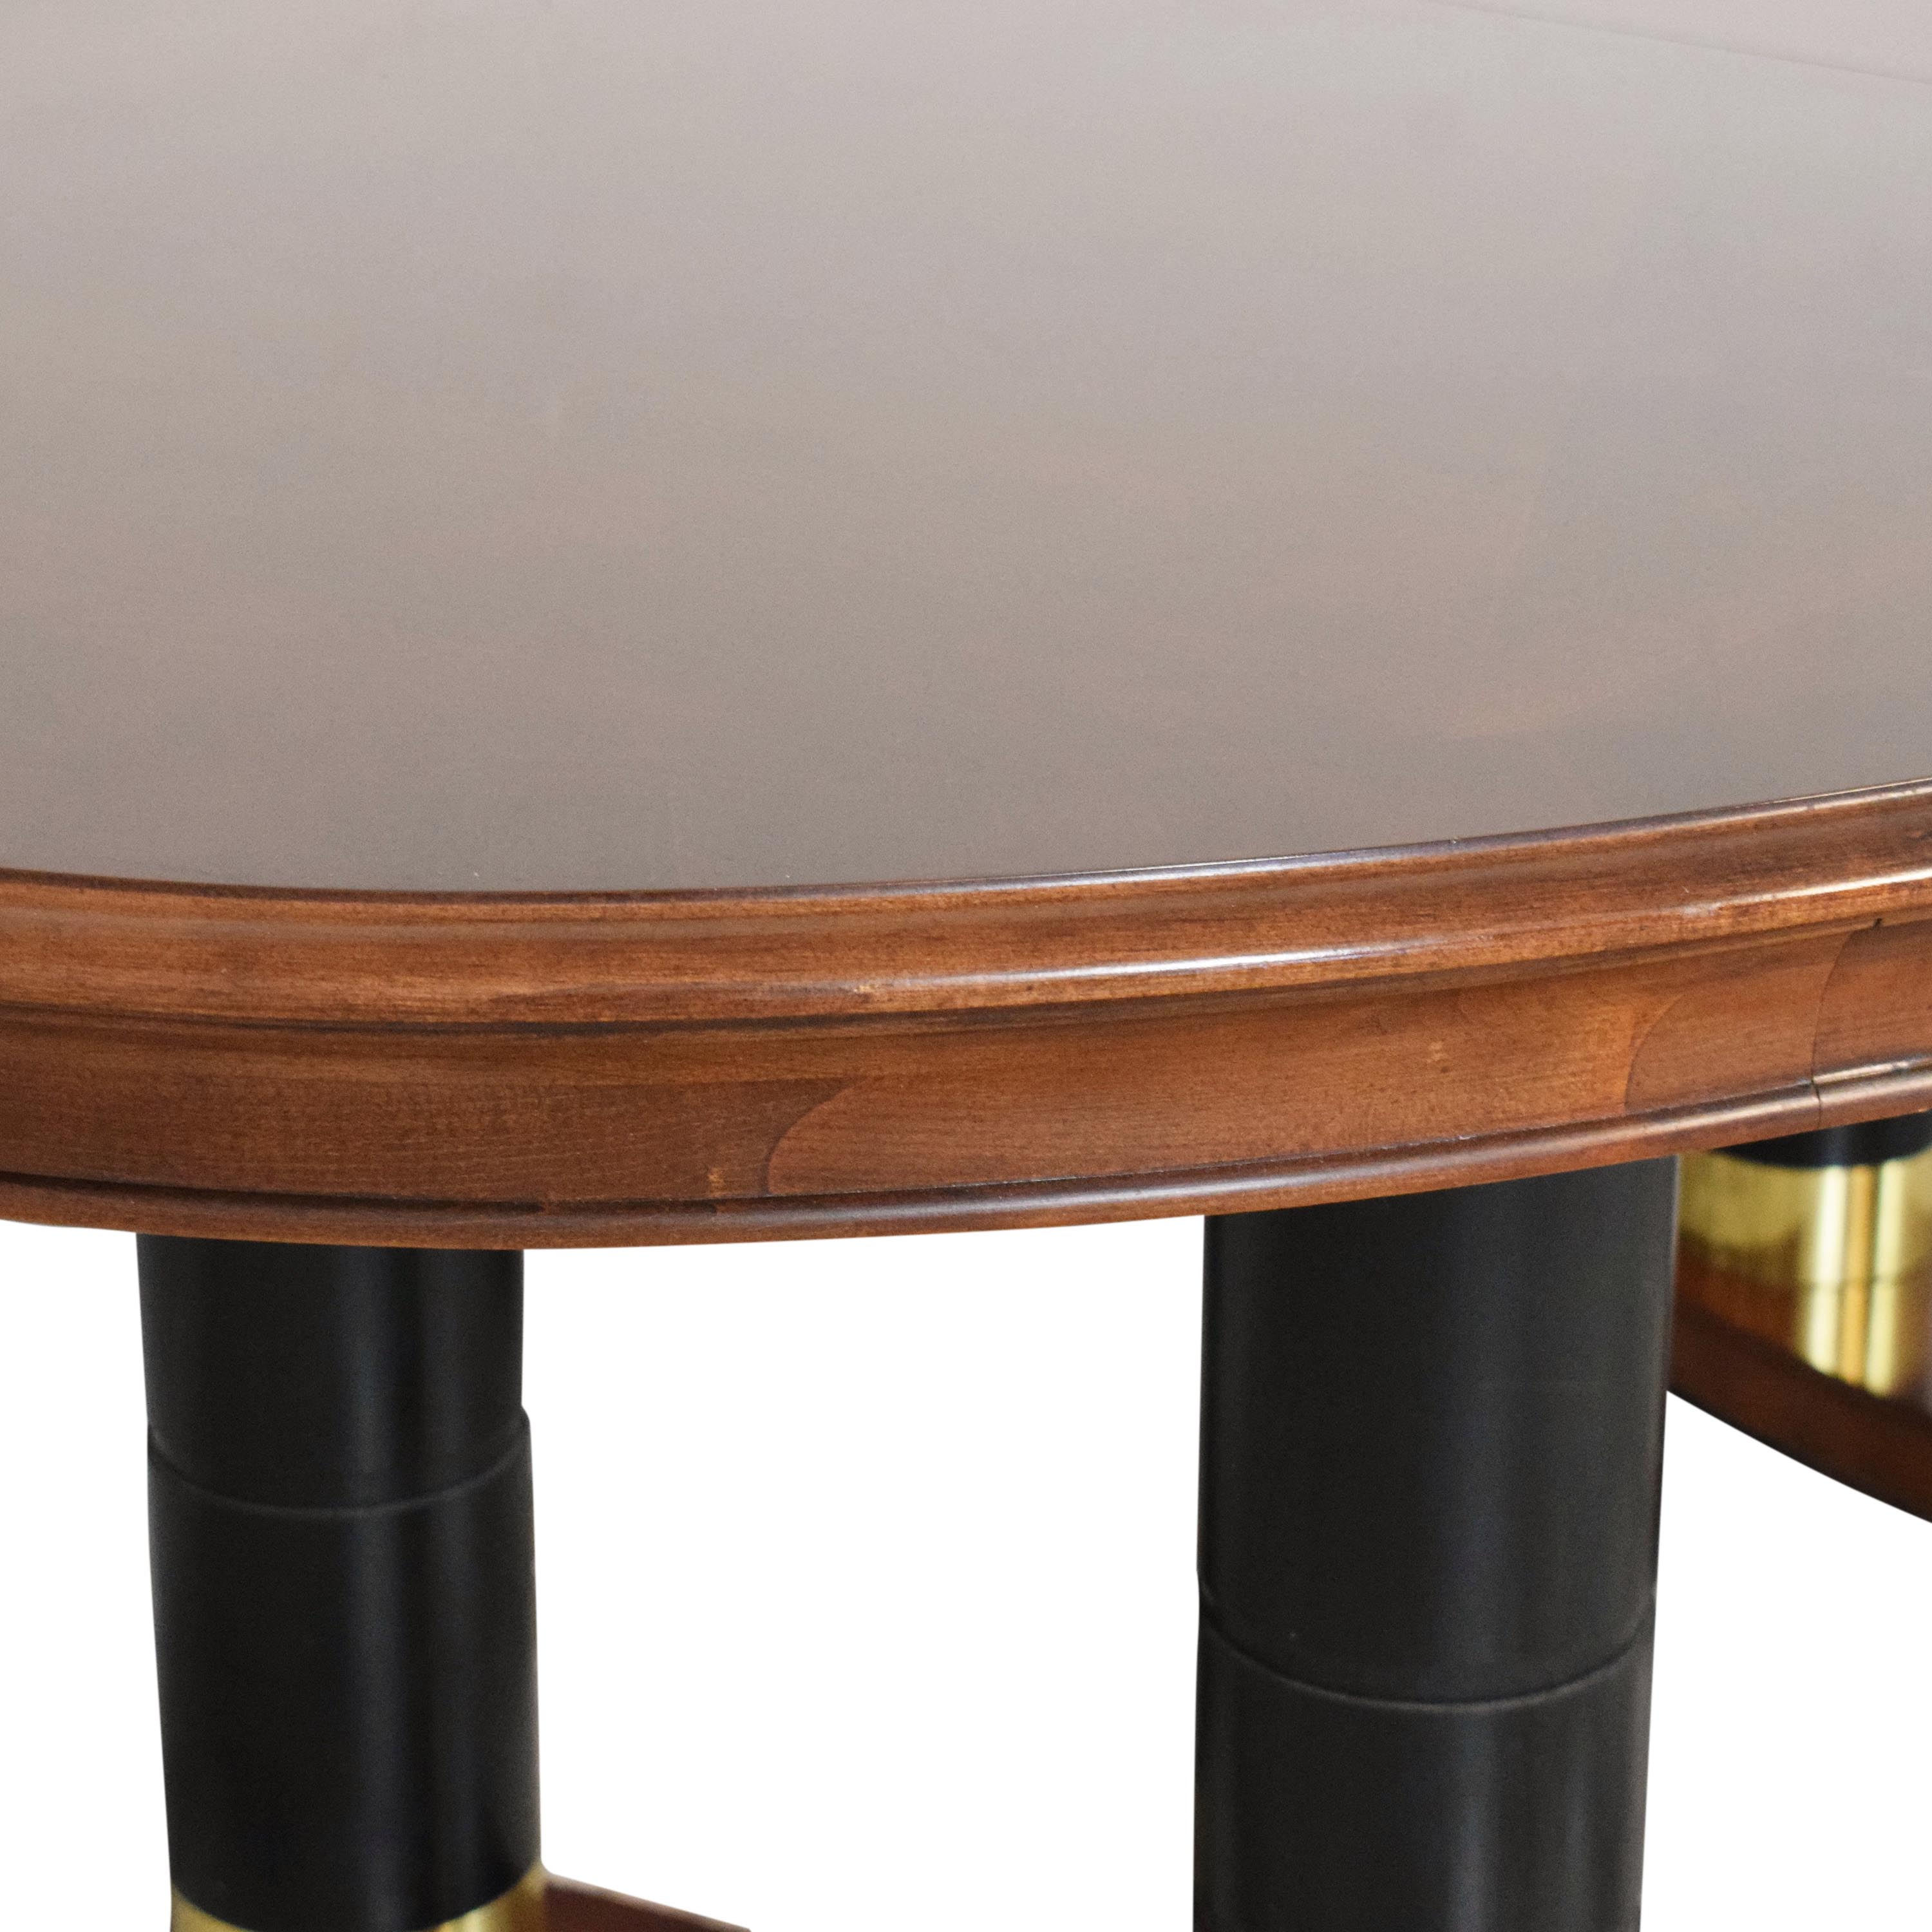 Huffman Koos Huffman Koos Extendable Oval Dining Table second hand